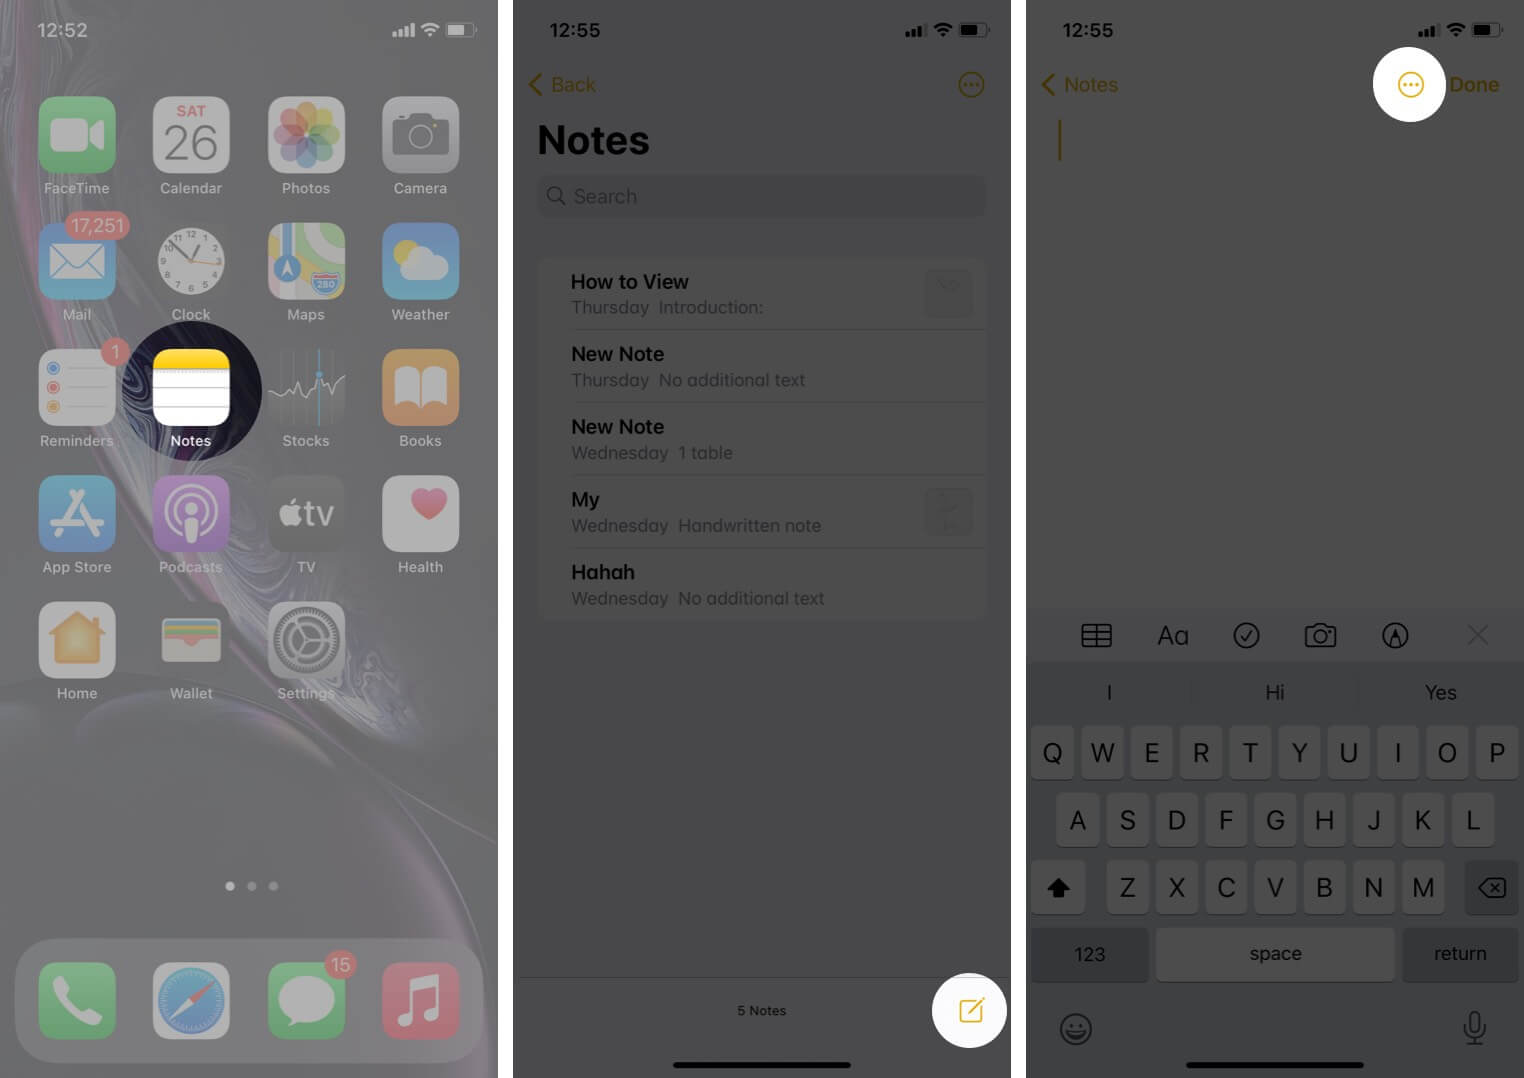 open notes app tap on create note and then tap on three dots icon on iphone